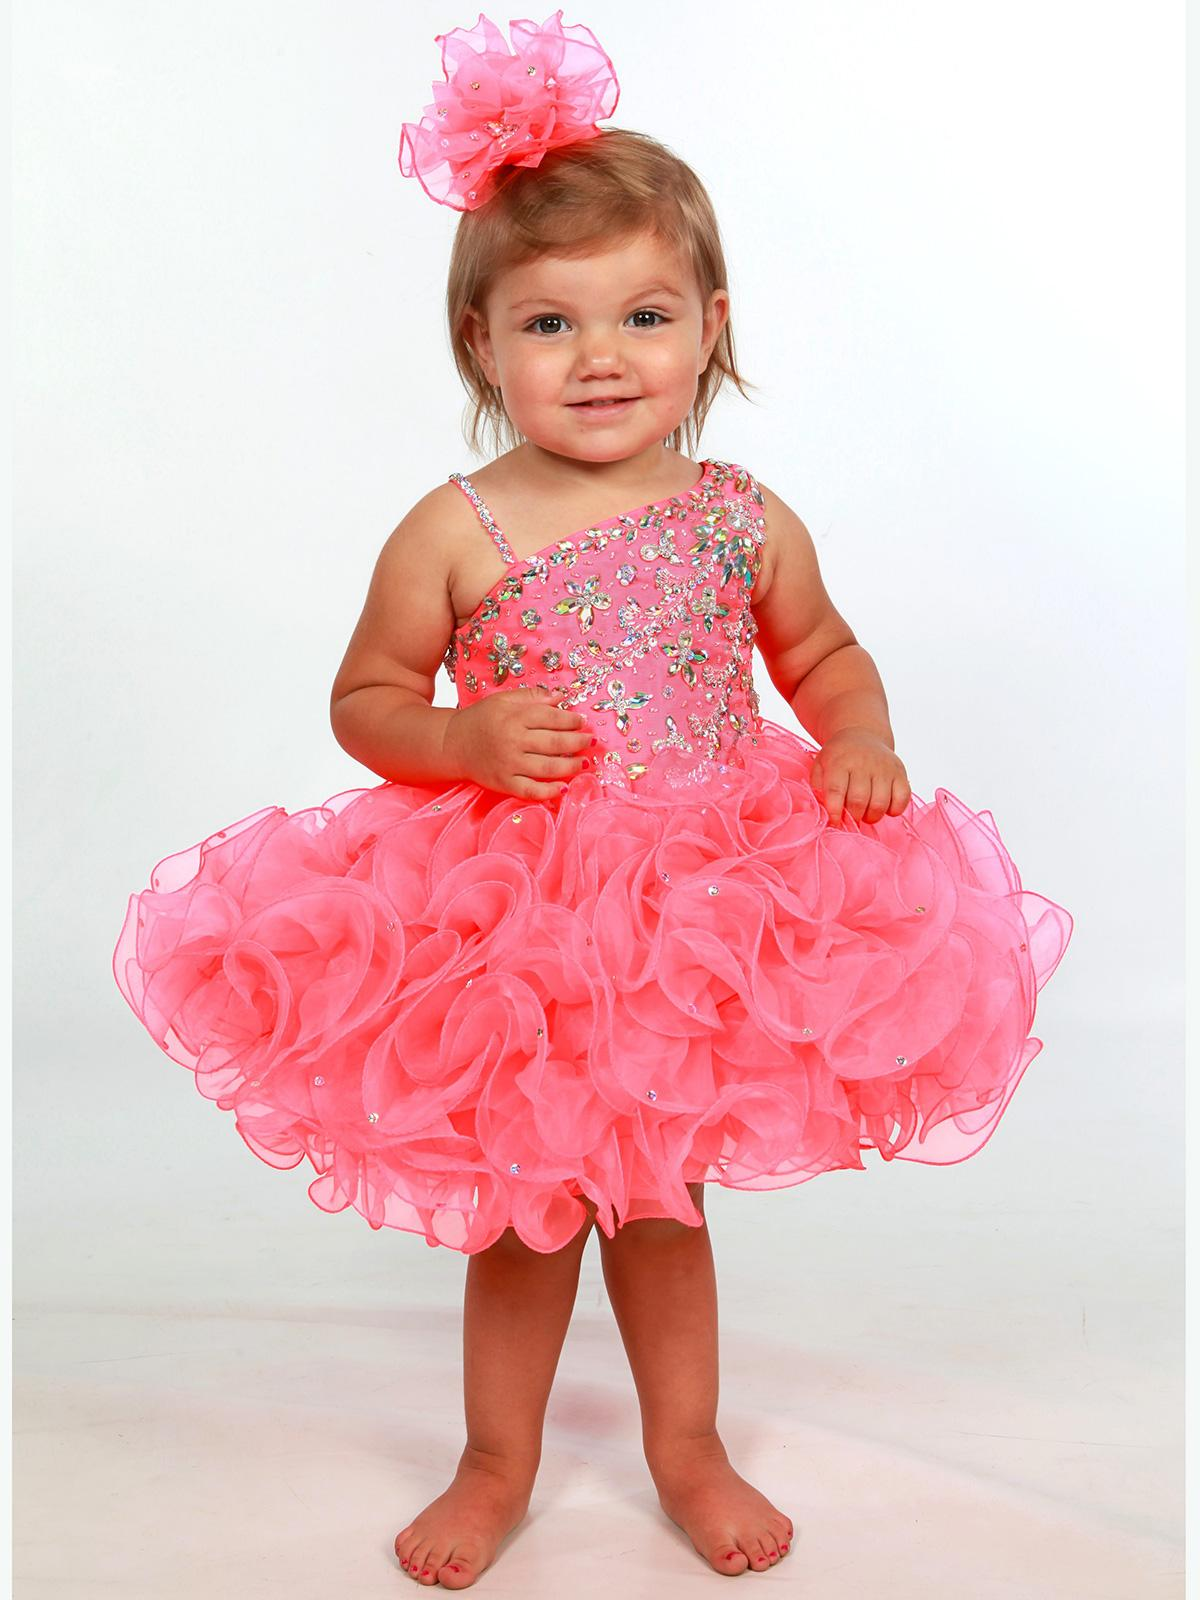 Toddler Baby Pageant Dresses 2017 with One Shoulder and Short Ruffled Cupcake Skirt Pink Girls Cupcake Pageant Dress Custom Made